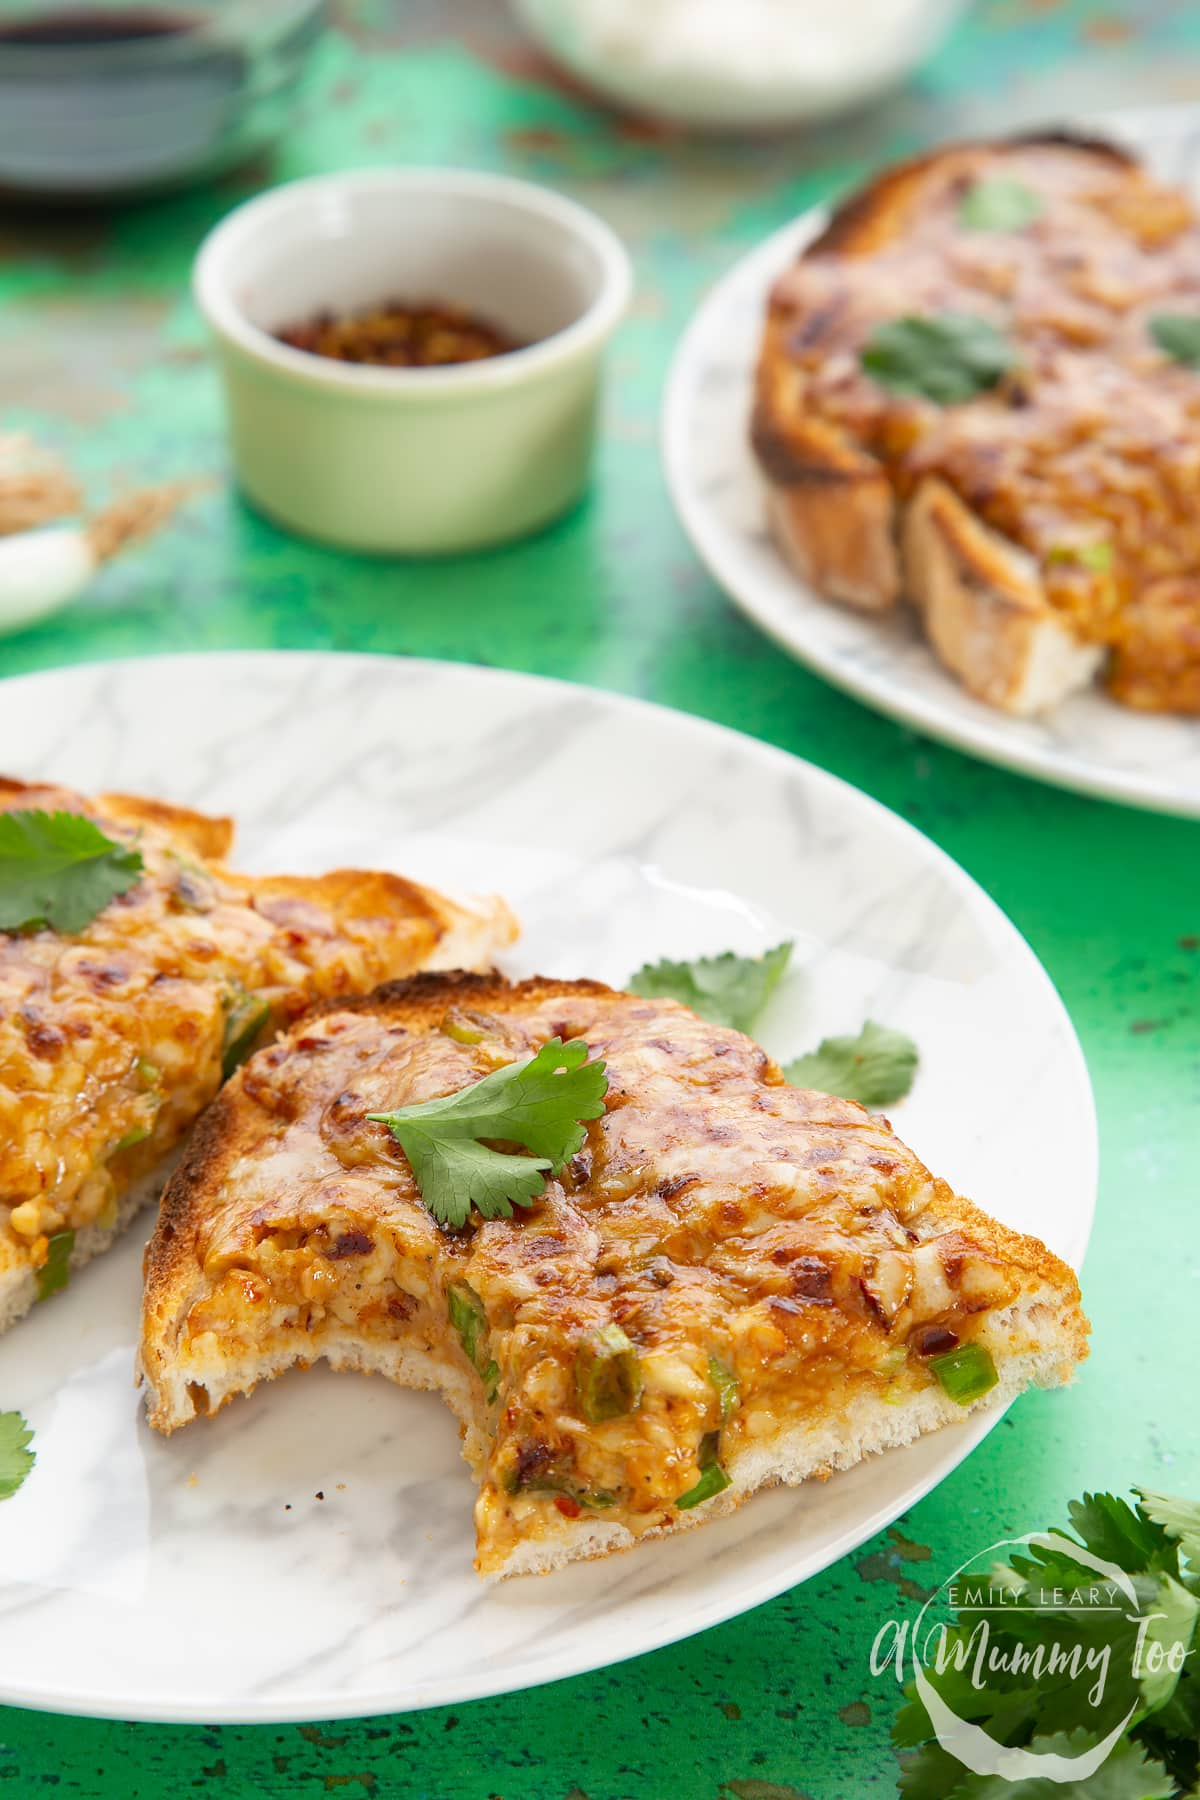 Two pieces of chilli cheese toast  on a white marbled plate, scattered with coriander. The piece in the foreground has a bite taken out of it.